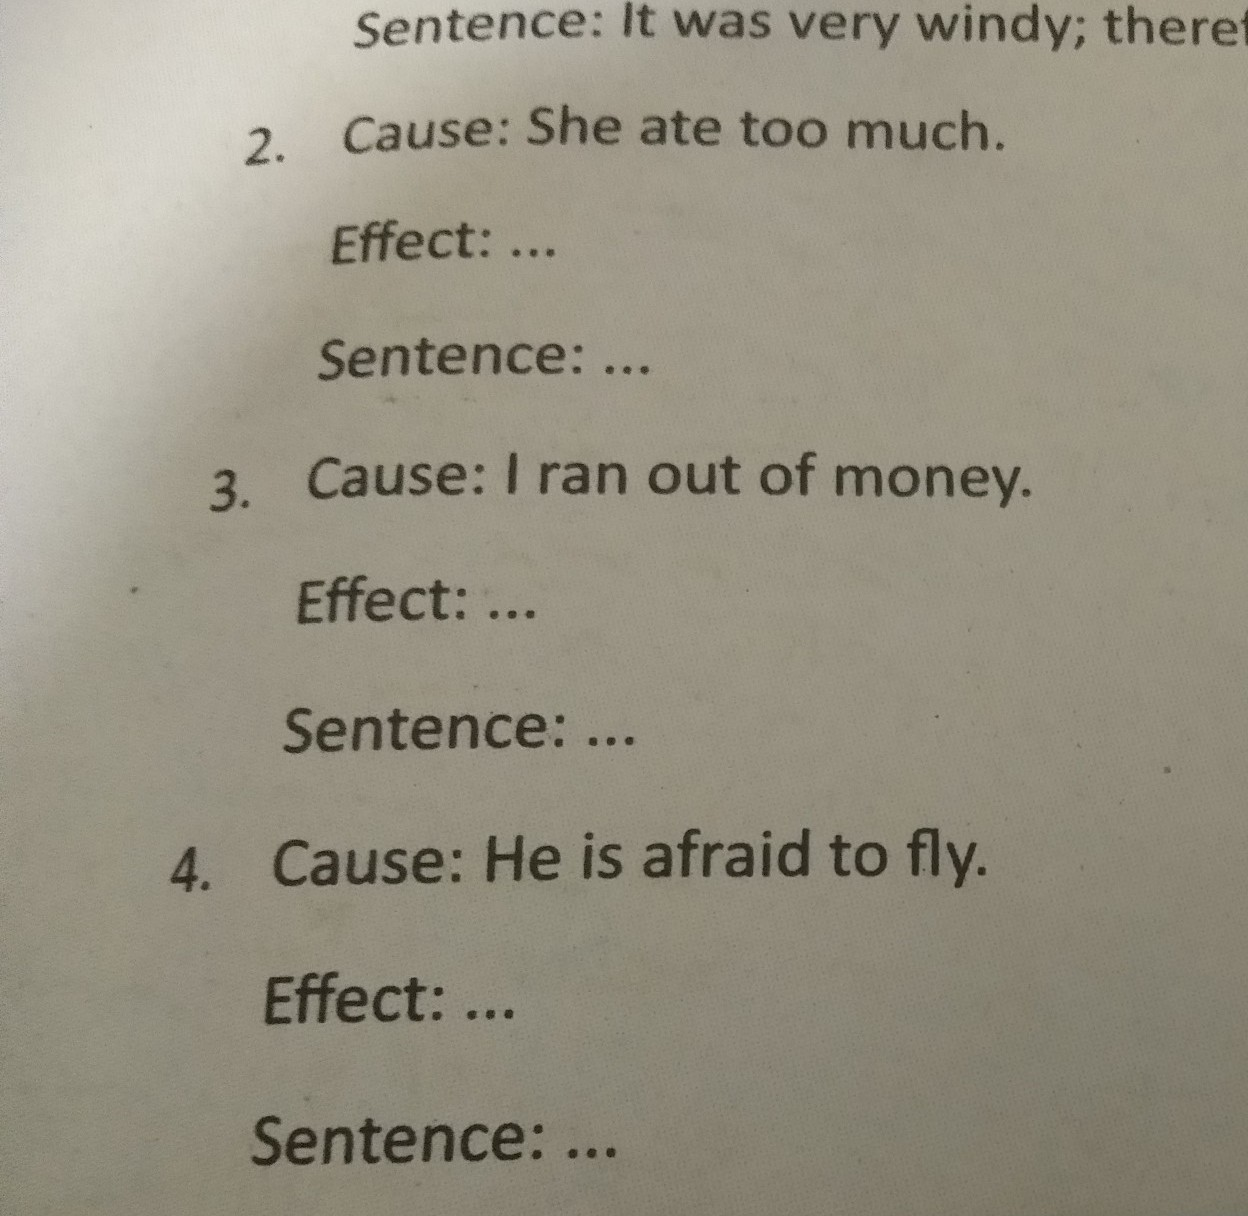 read the sause, write the effect, then write the complete sentence